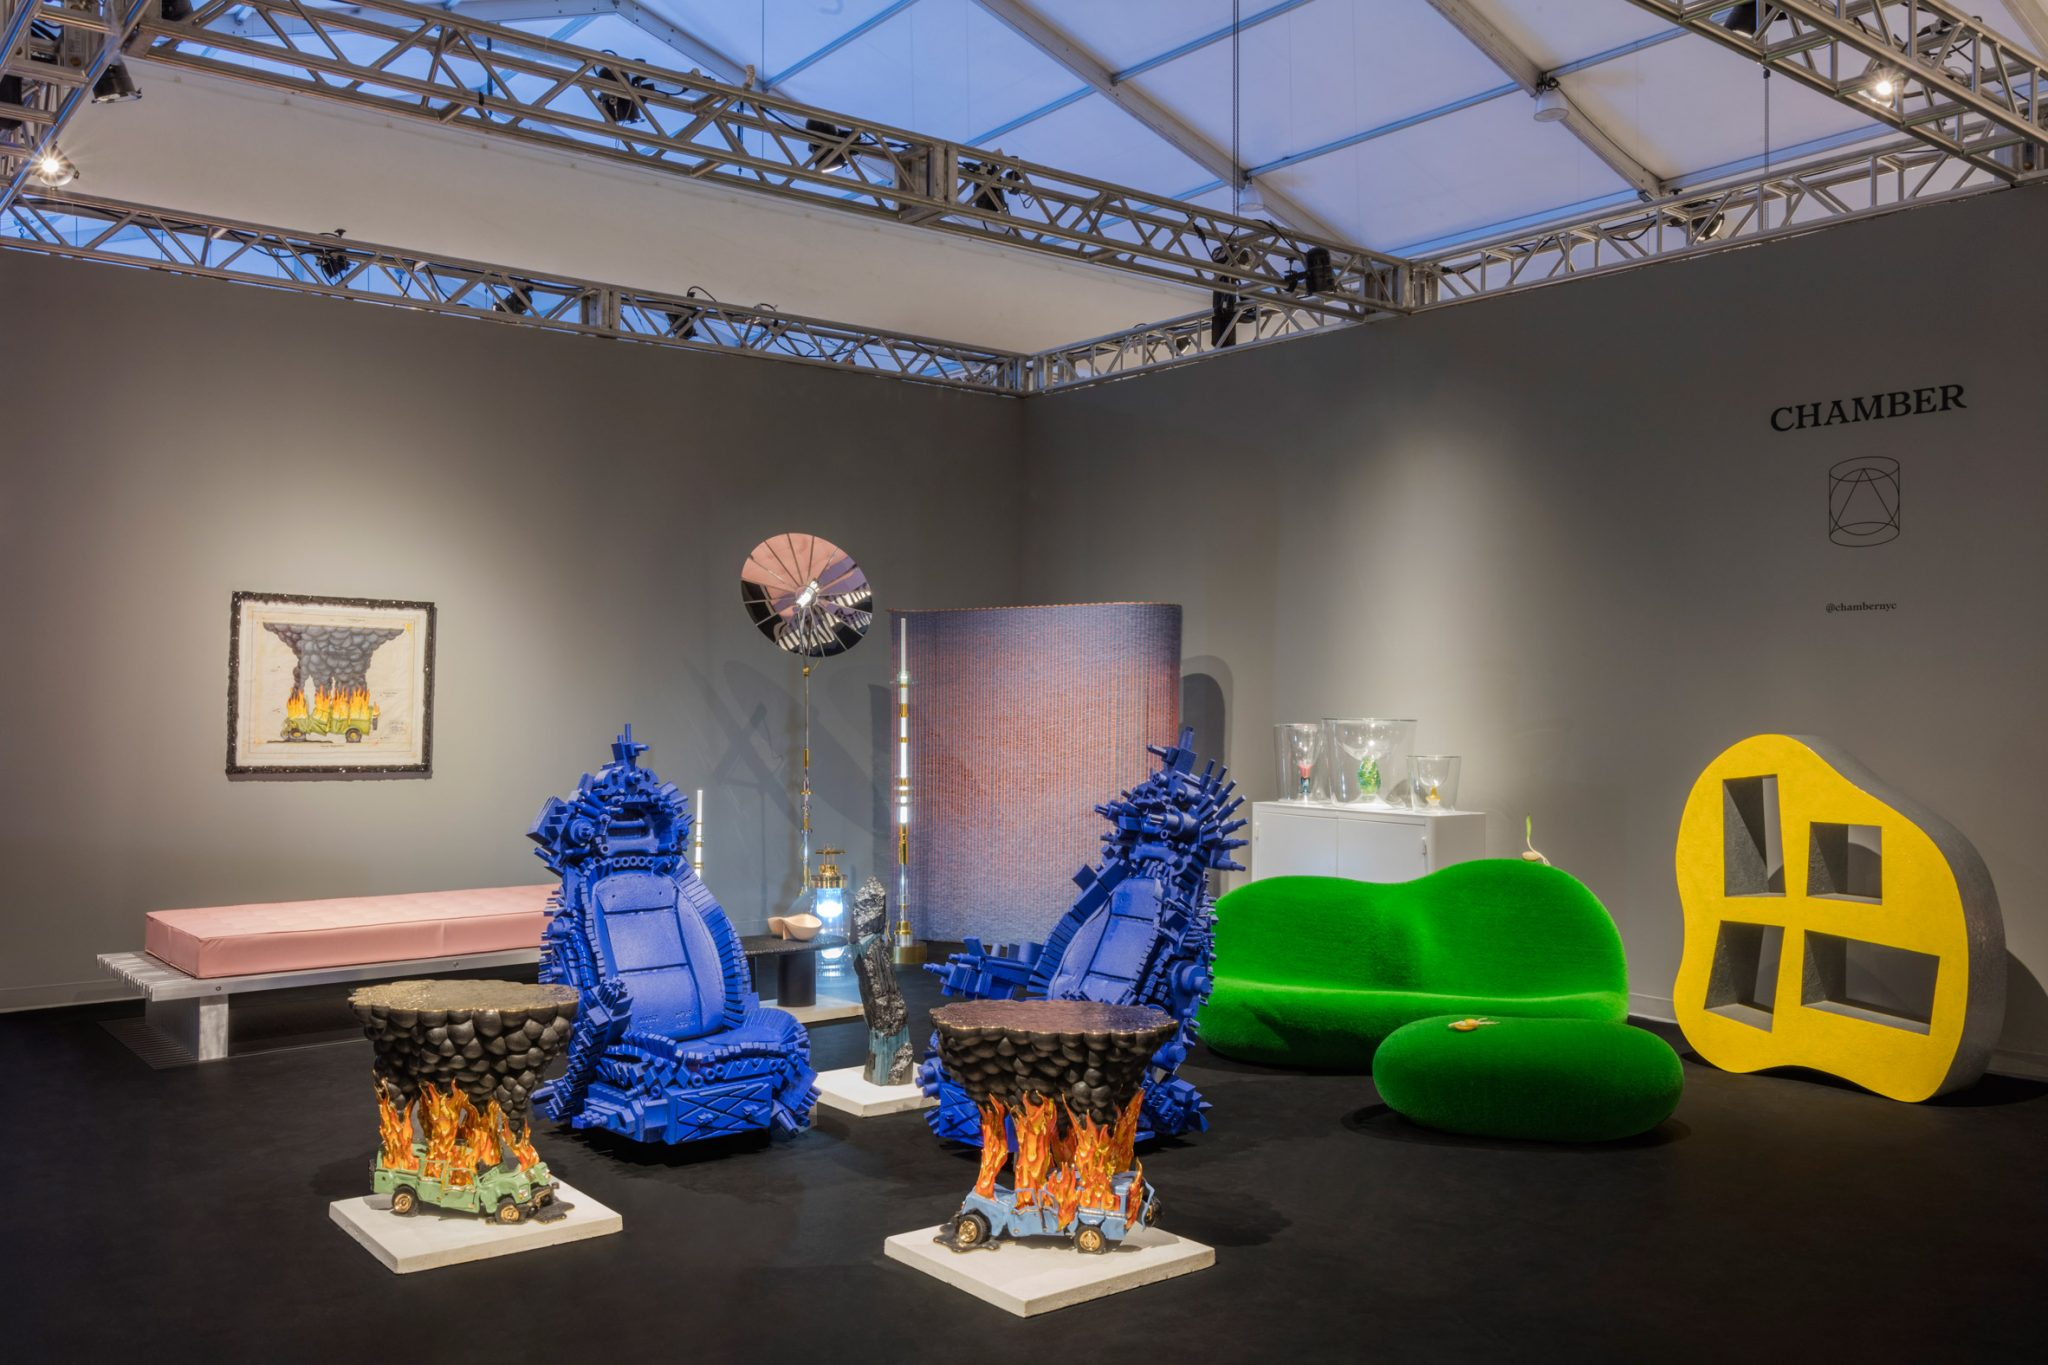 chamber-gallery-design-miami-furniture-installation-views-credit-lauren-coleman_dezeen_2364_col_7